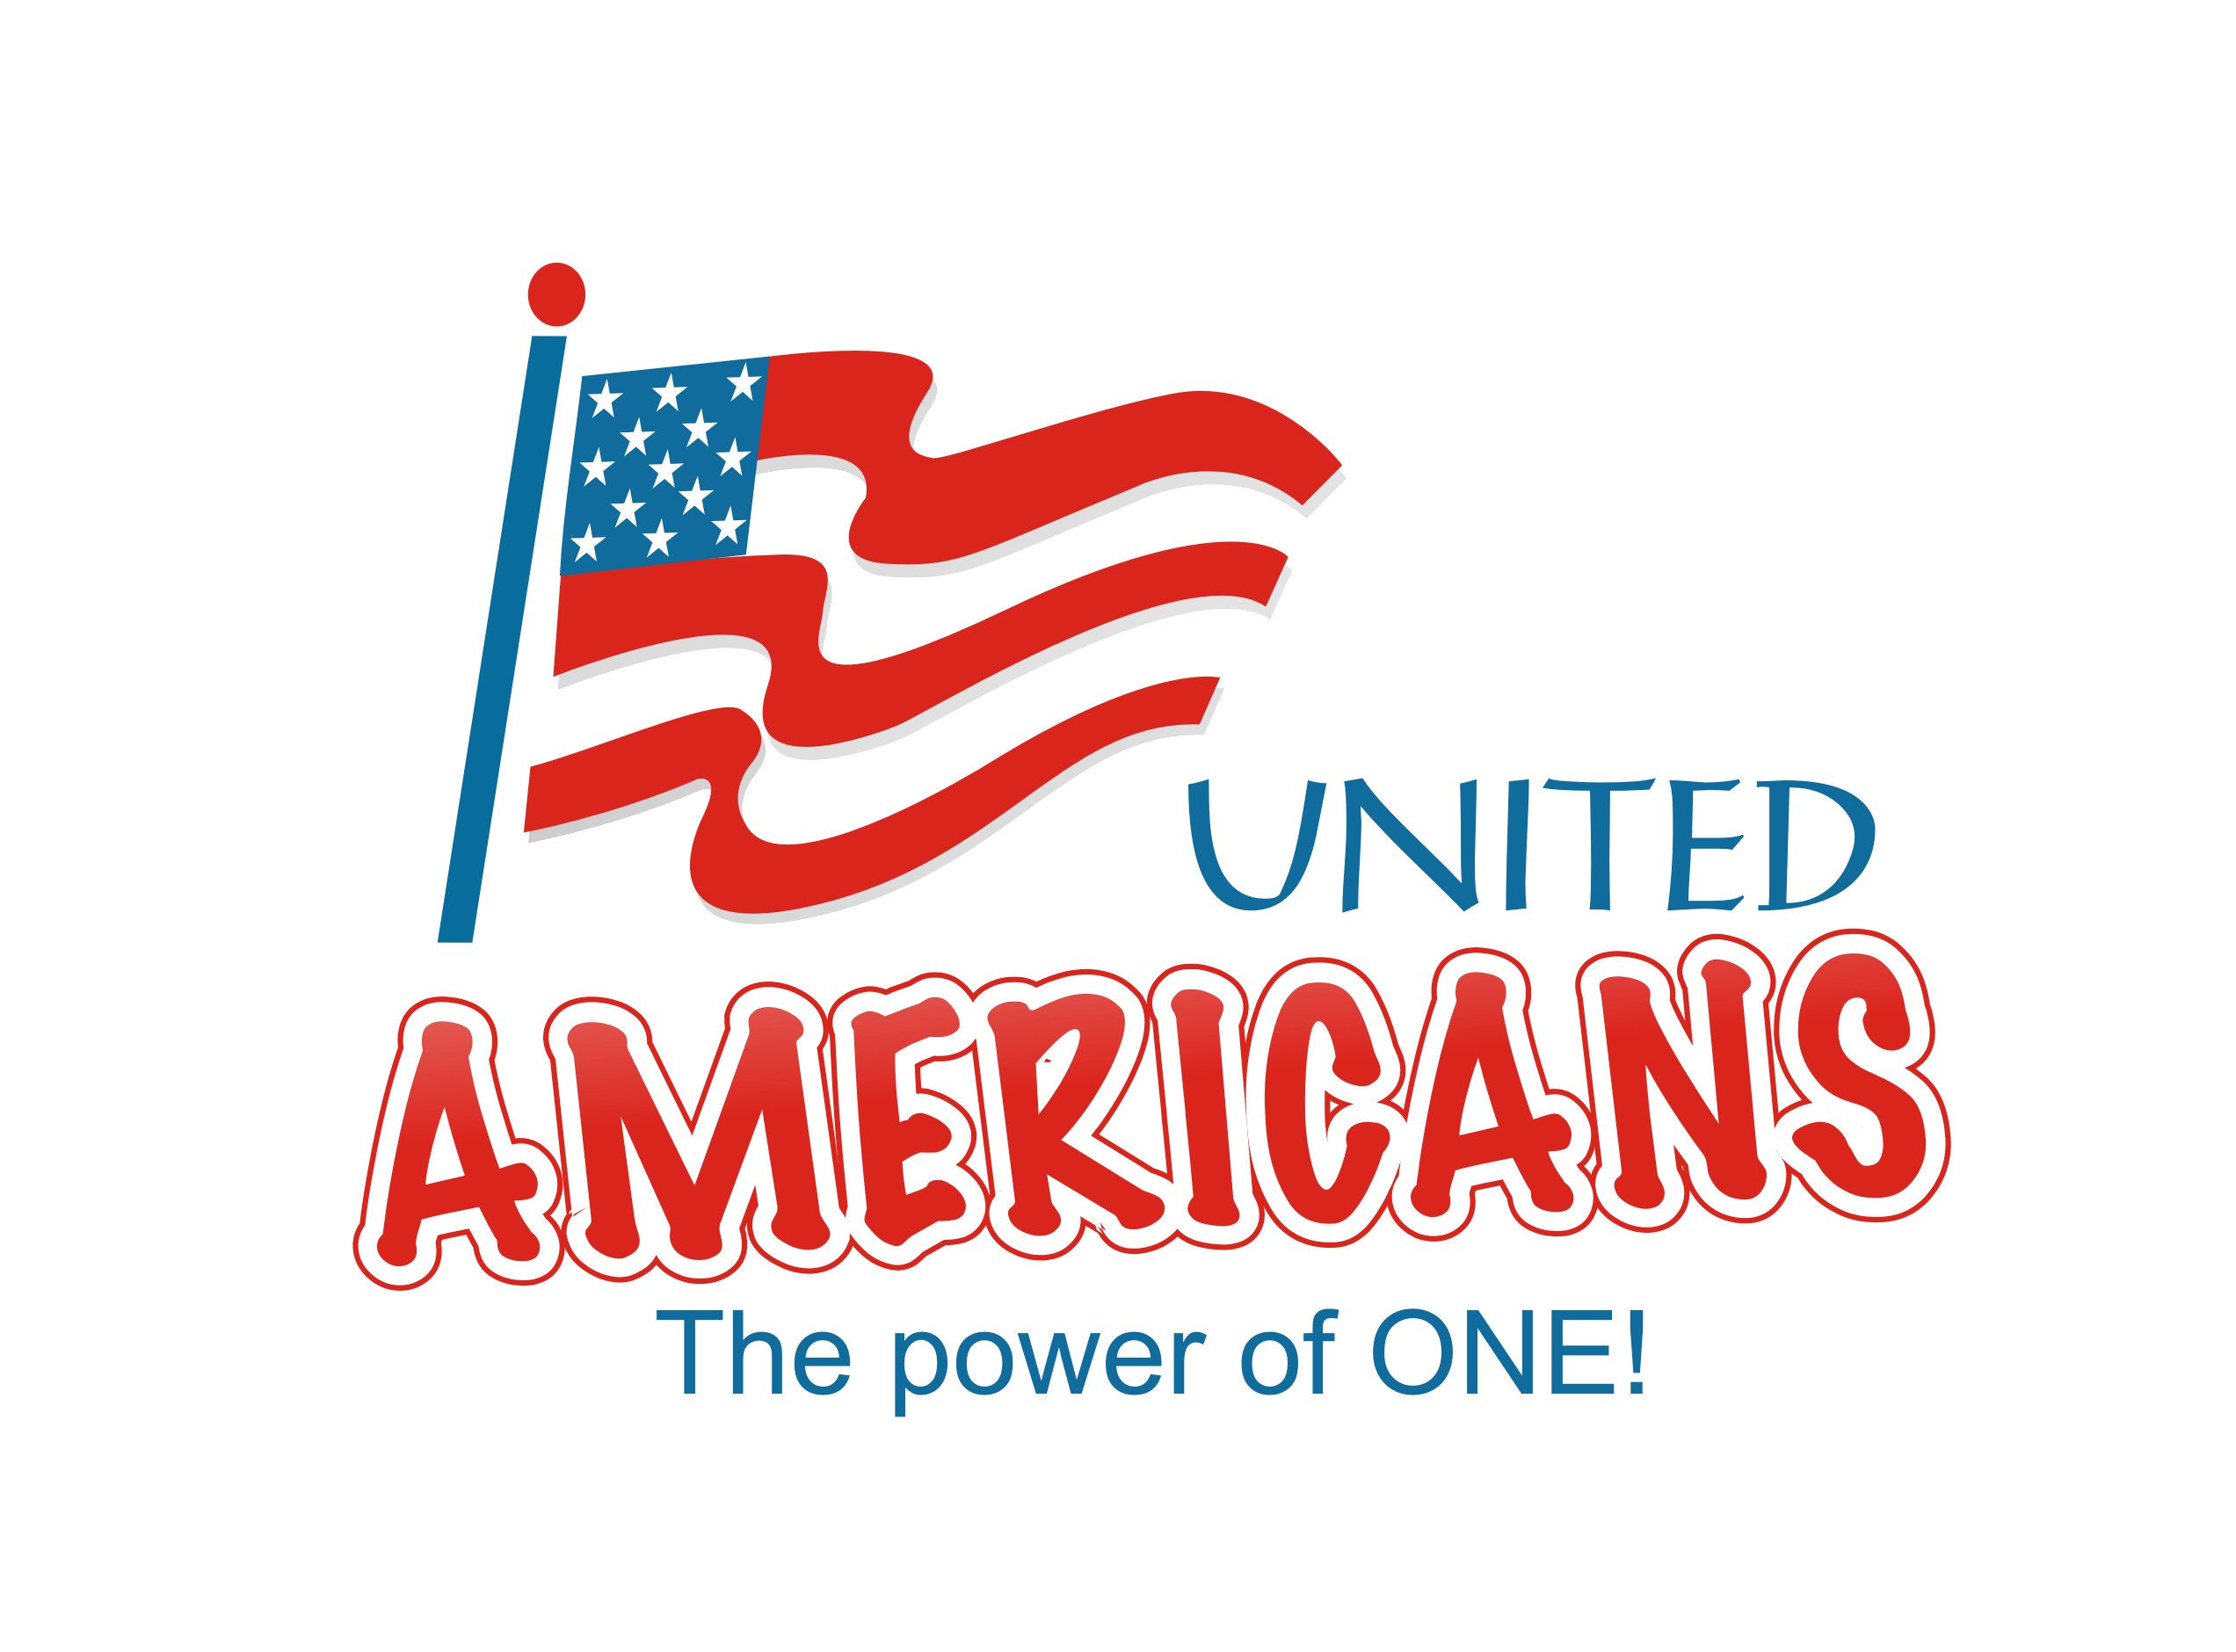 Logo Design by Shailender Kumar - Entry No. 28 in the Logo Design Contest Creative Logo Design for United Americans.